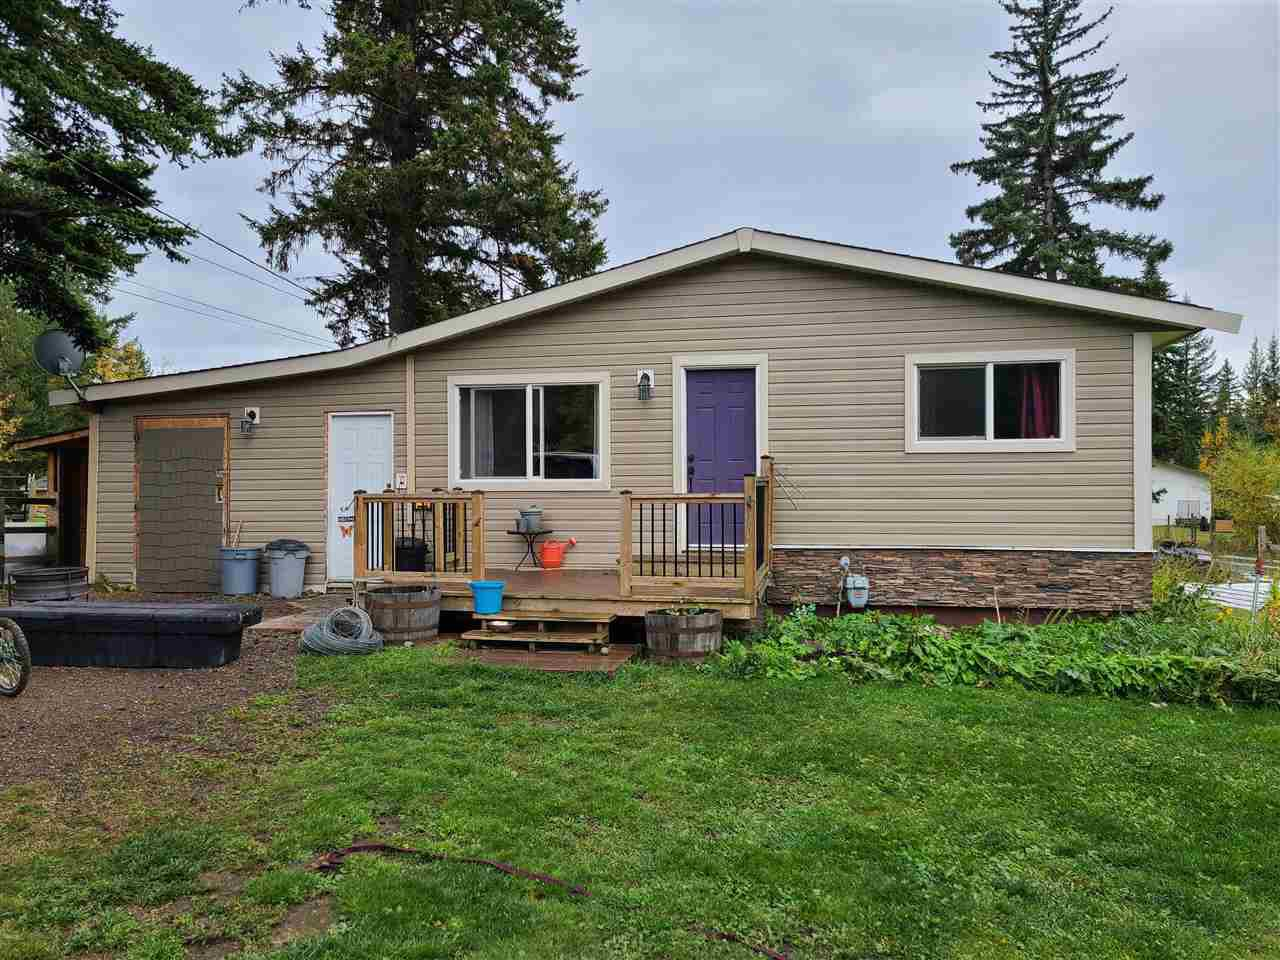 Main Photo: 5850 HORSE LAKE Road in 100 Mile House: Horse Lake House for sale (100 Mile House (Zone 10))  : MLS®# R2506008